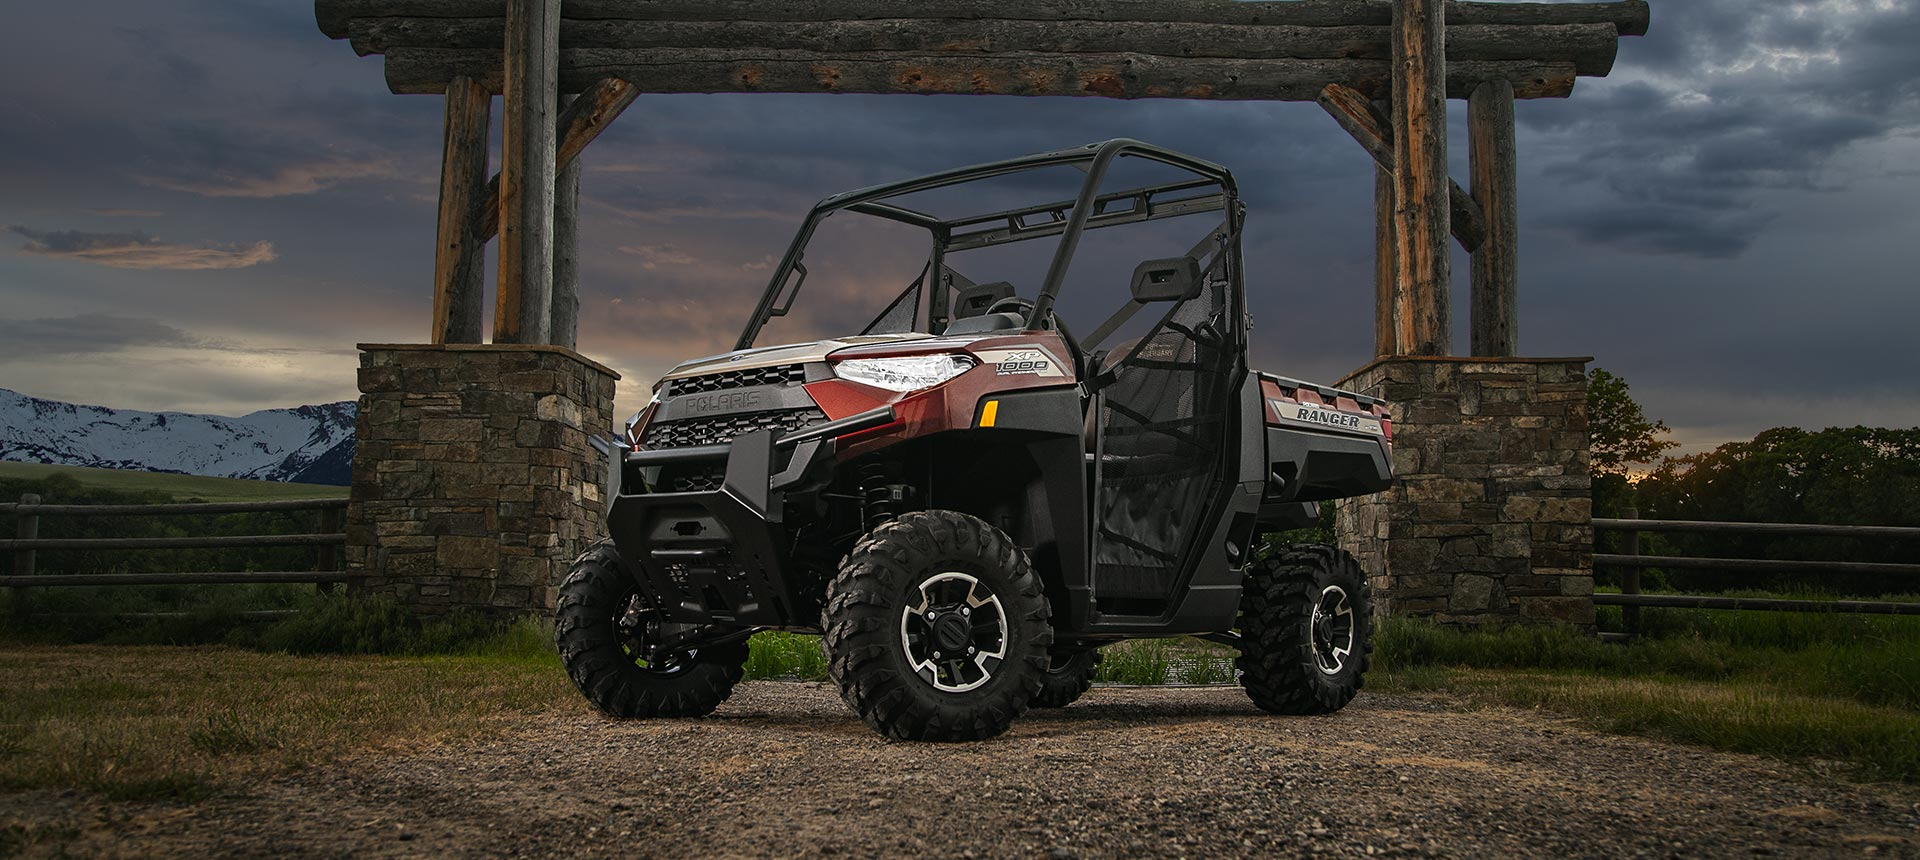 2019 Polaris Ranger XP 1000 EPS in Katy, Texas - Photo 8